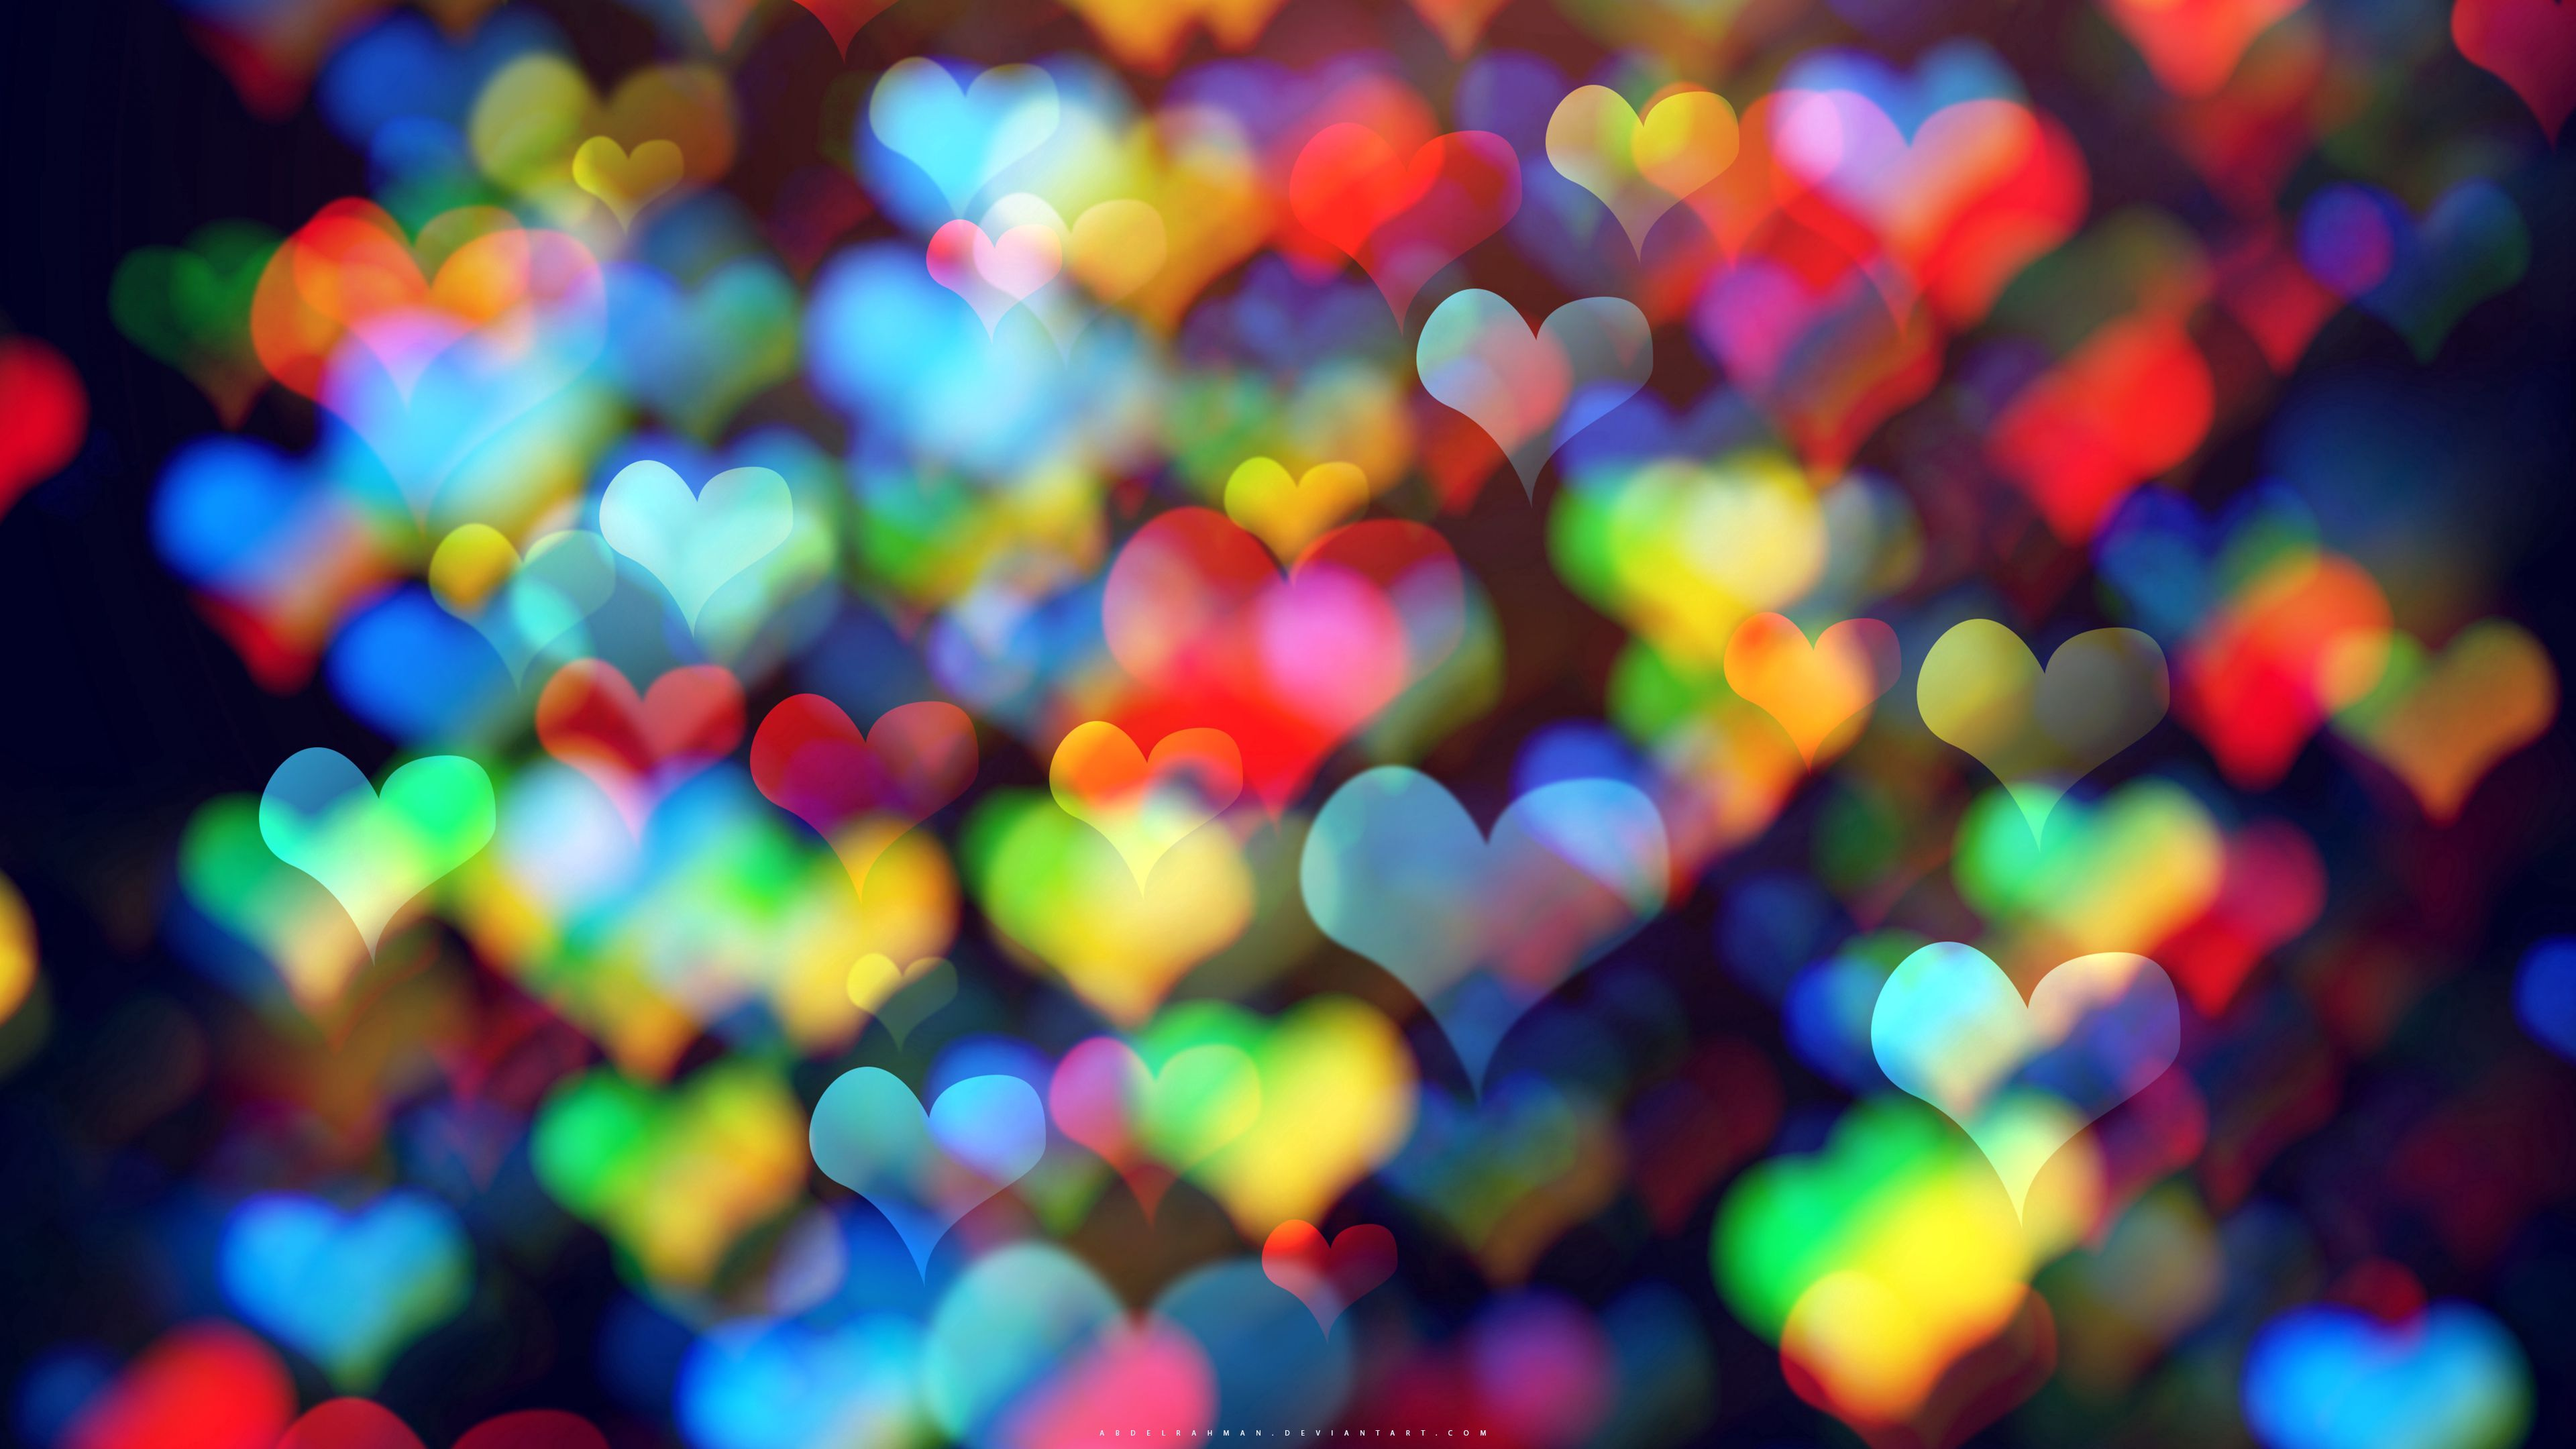 83206 download wallpaper Abstract, Hearts, Multicolored, Motley, Bokeh, Boquet screensavers and pictures for free